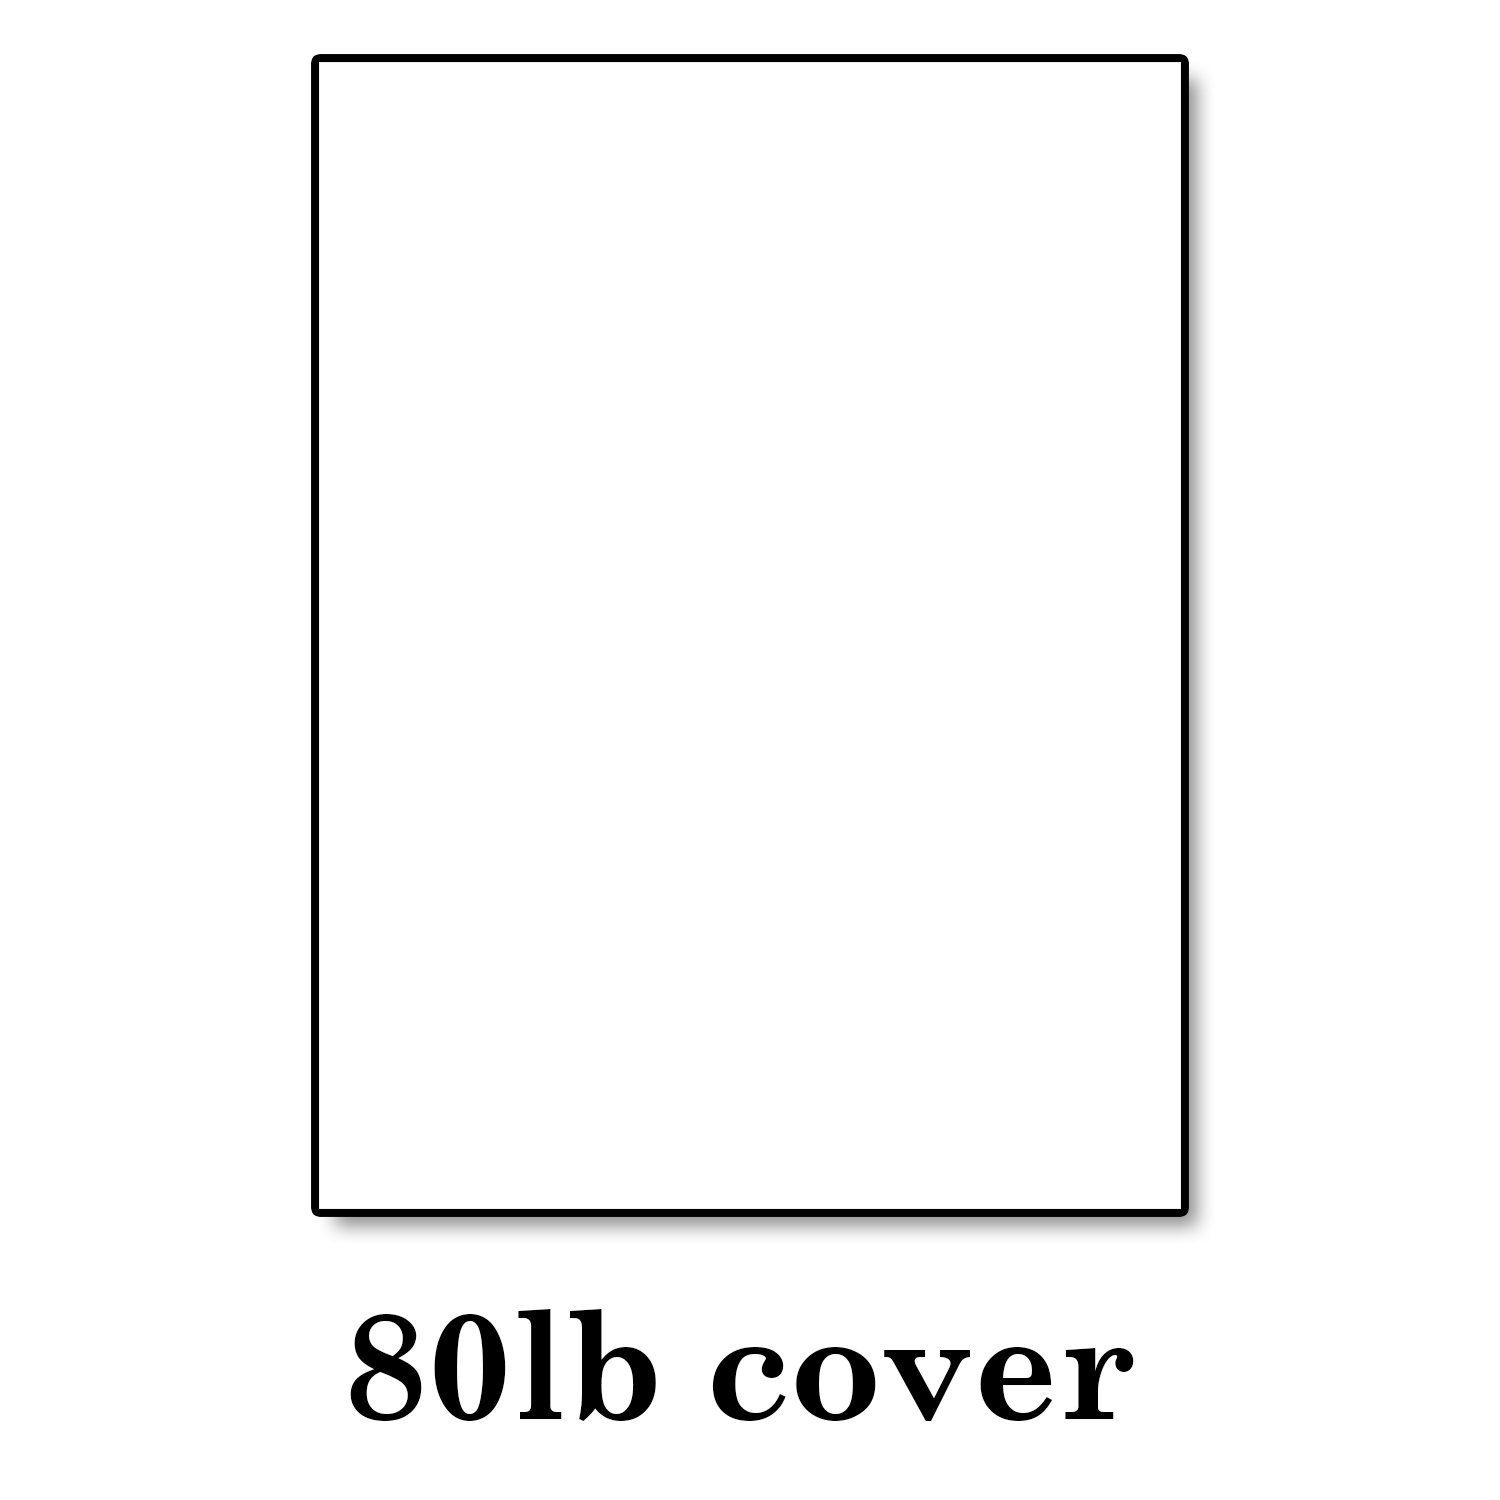 """Hamilco White Cardstock Thick Paper – 8 1/2 x 11"""" Blank Heavy Weight 80 lb Cover Card Stock - for Brochure Award and Stationery Printing - 250 Pack"""